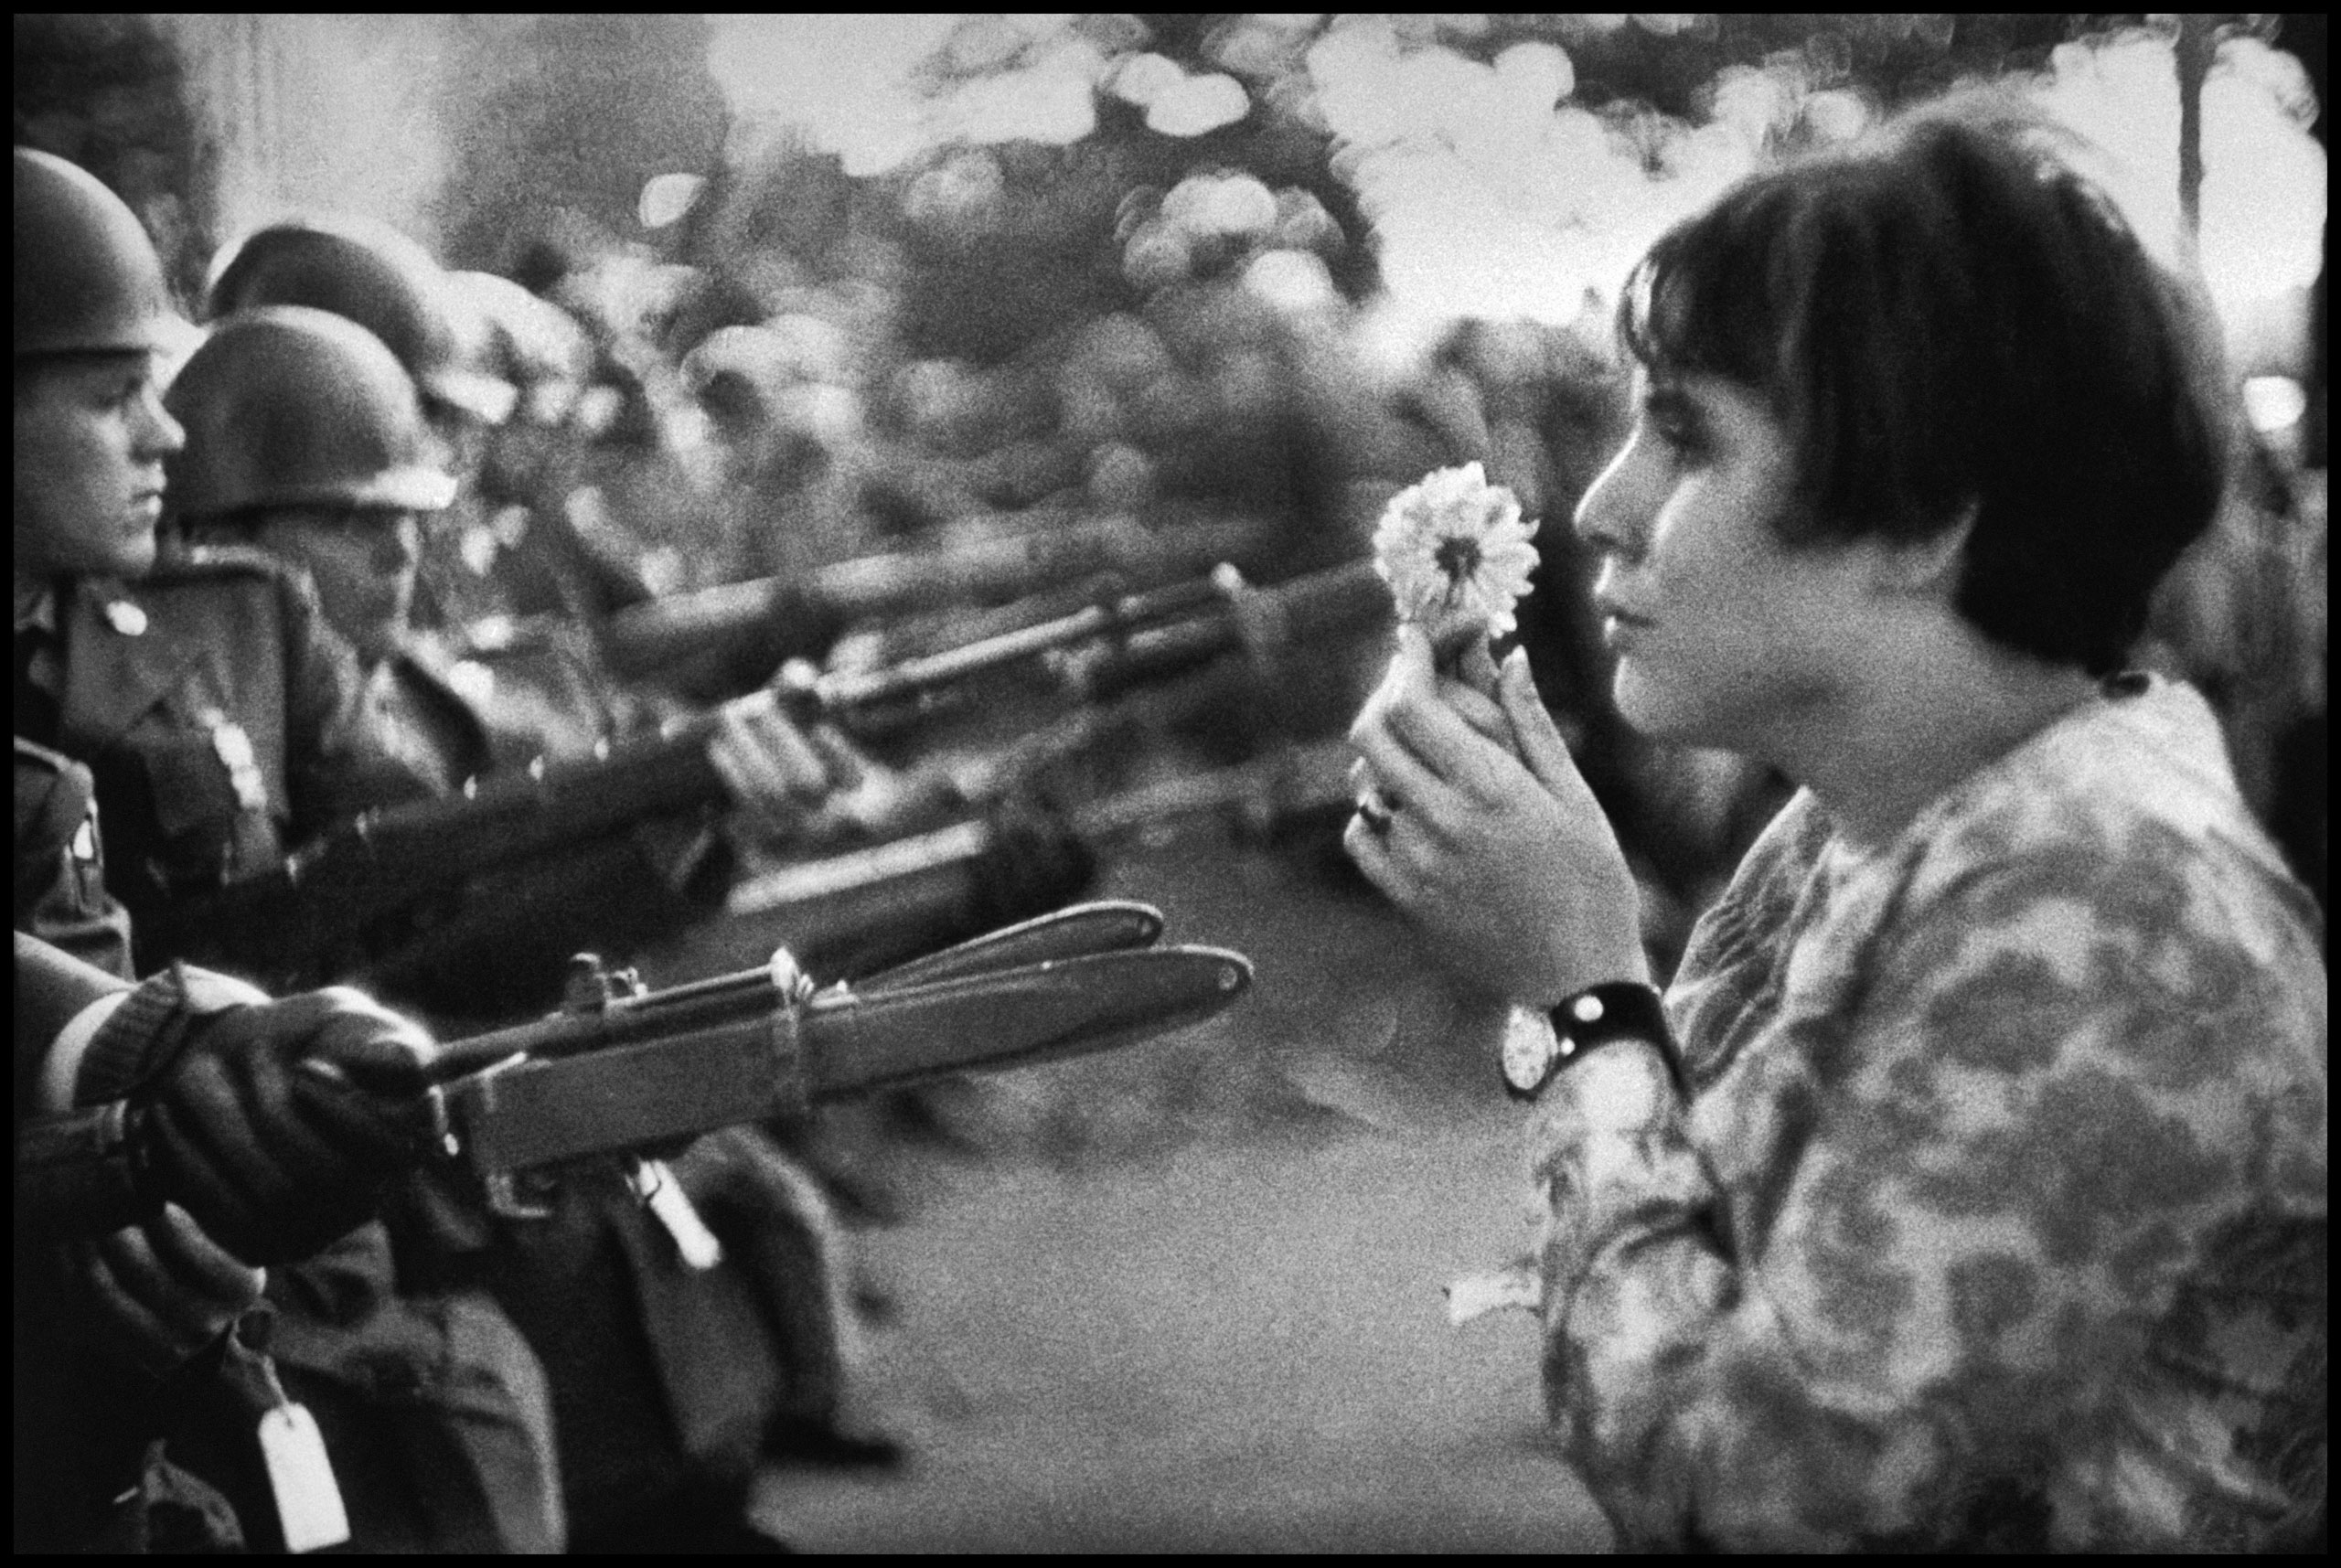 Jan Rose Kasmir confronts the American National Guard outside the Pentagon during the 1967 anti-Vietnam march in Washington on Oct. 21, 1967.